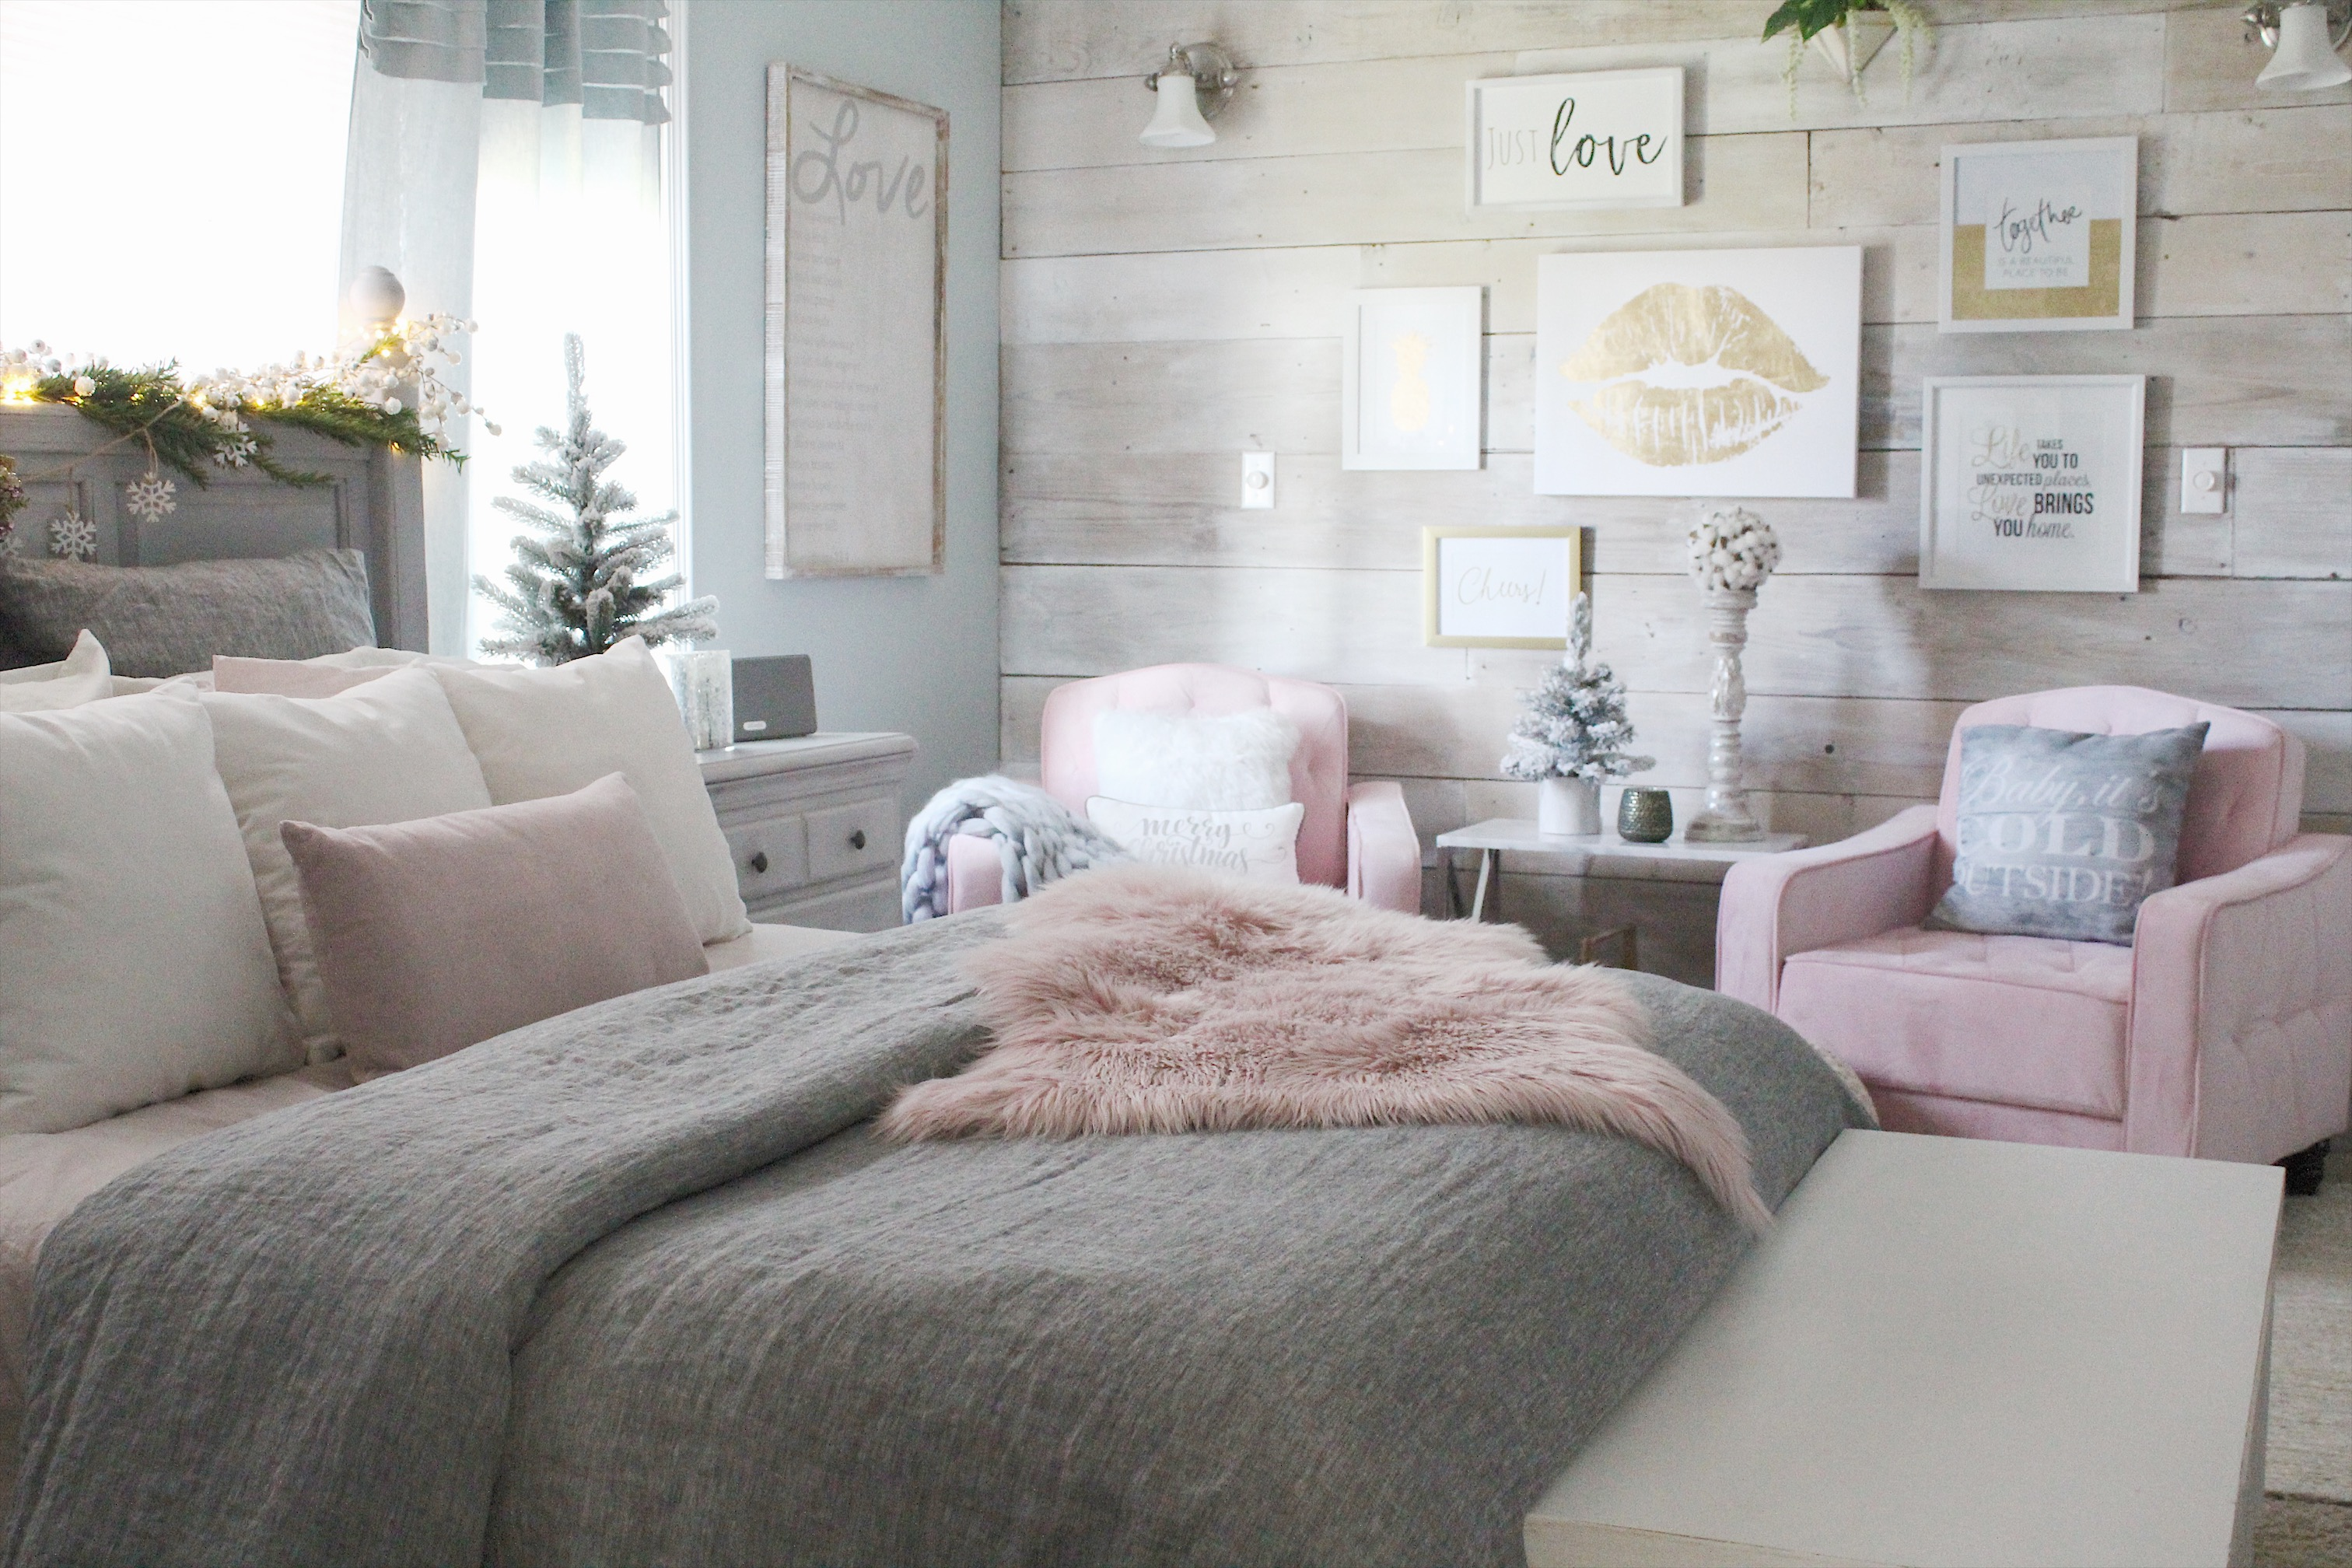 Cozy Christmas bedroom 2017 7